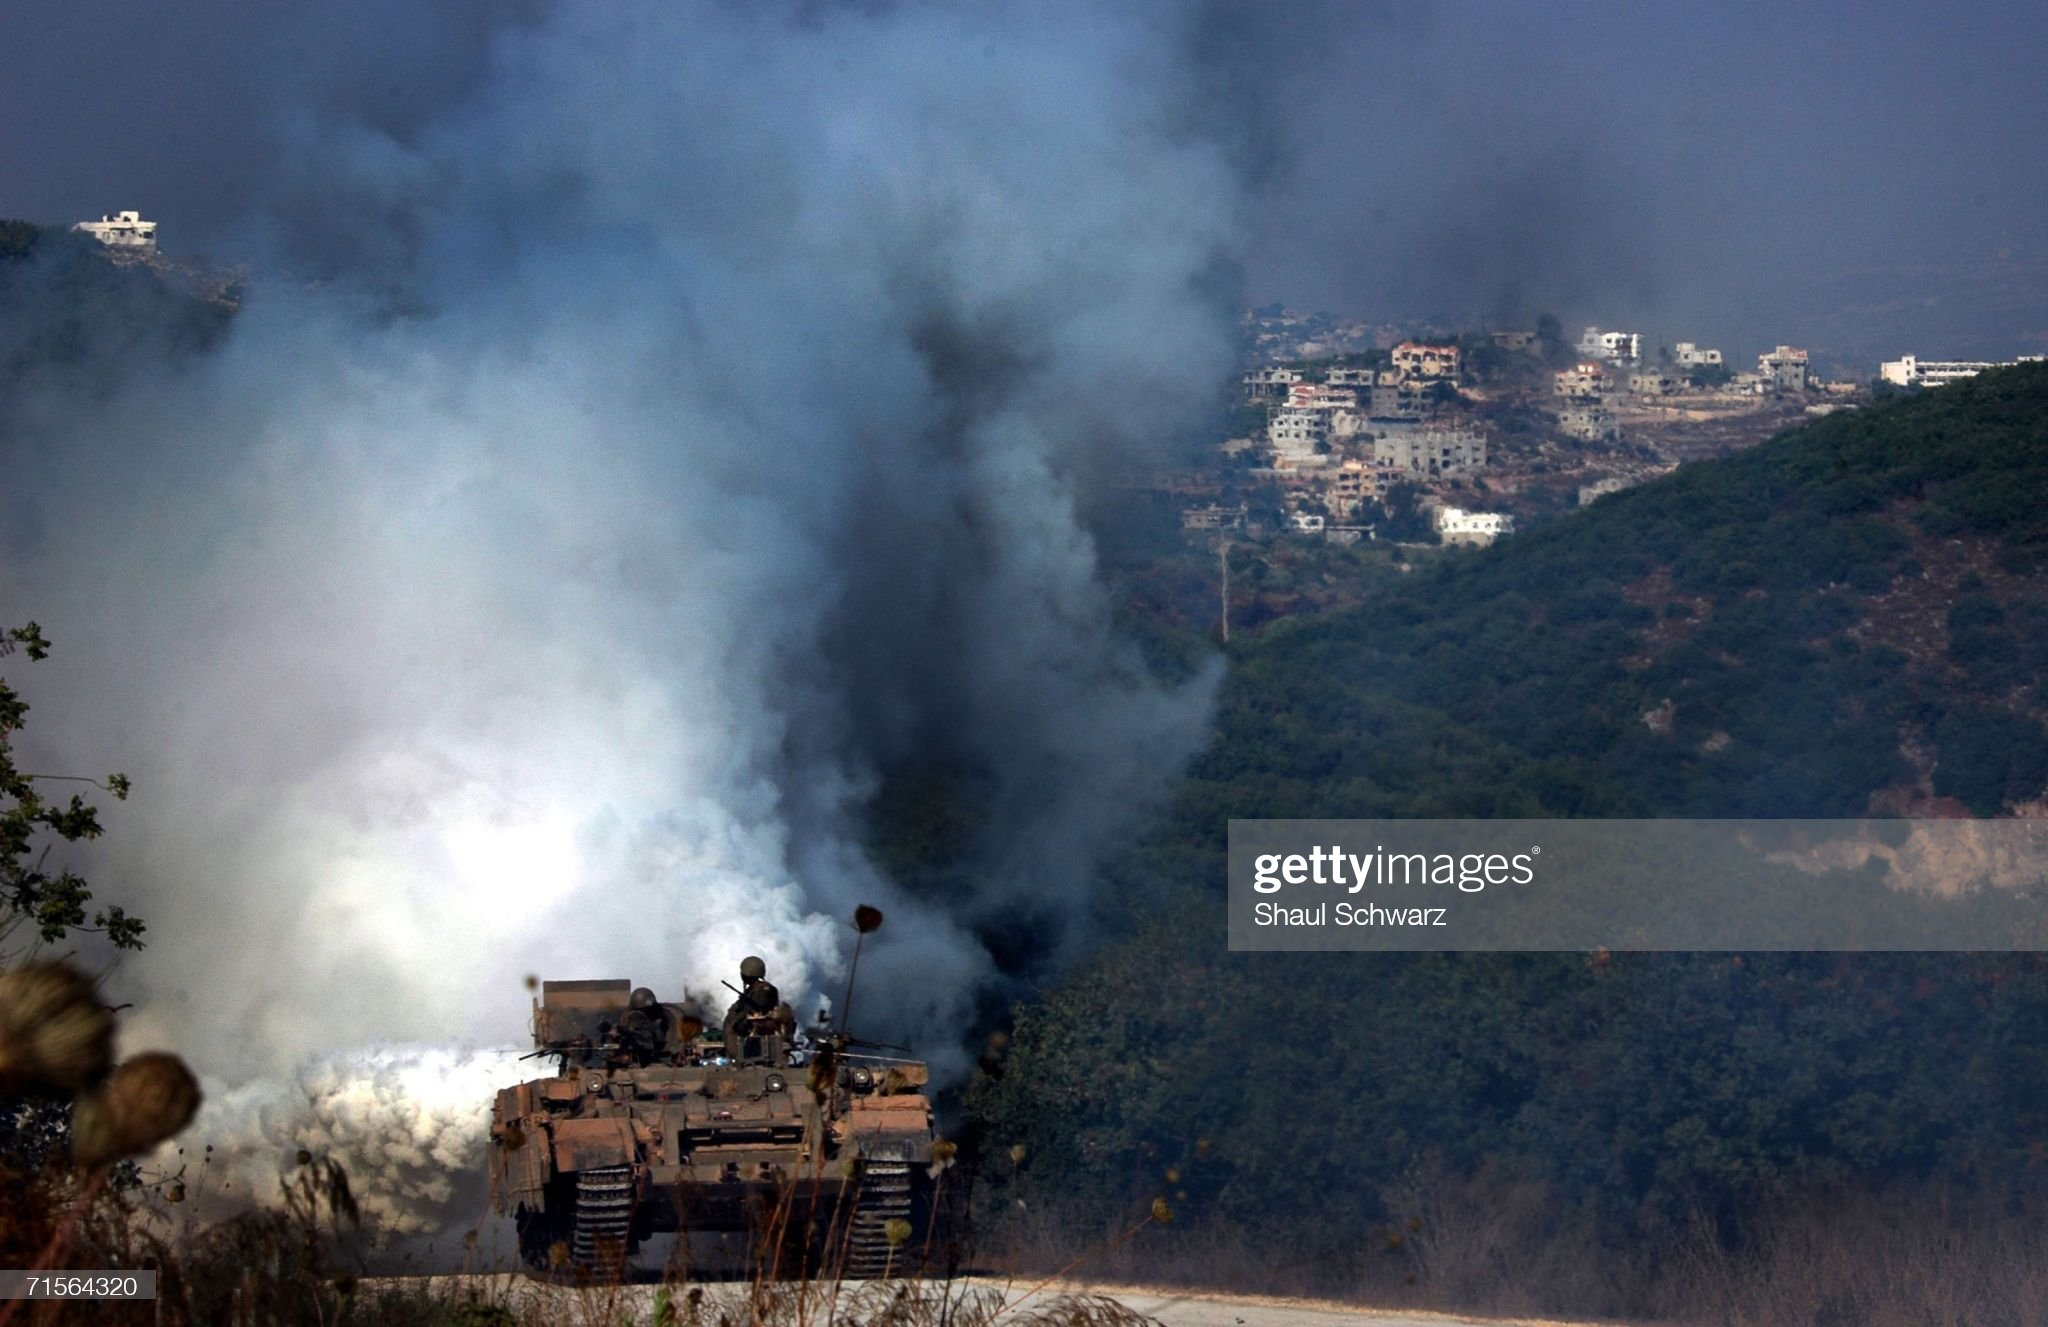 https://media.gettyimages.com/photos/an-israeli-tank-uses-a-smoke-screen-to-protect-itself-from-anti-tank-picture-id71564320?s=2048x2048